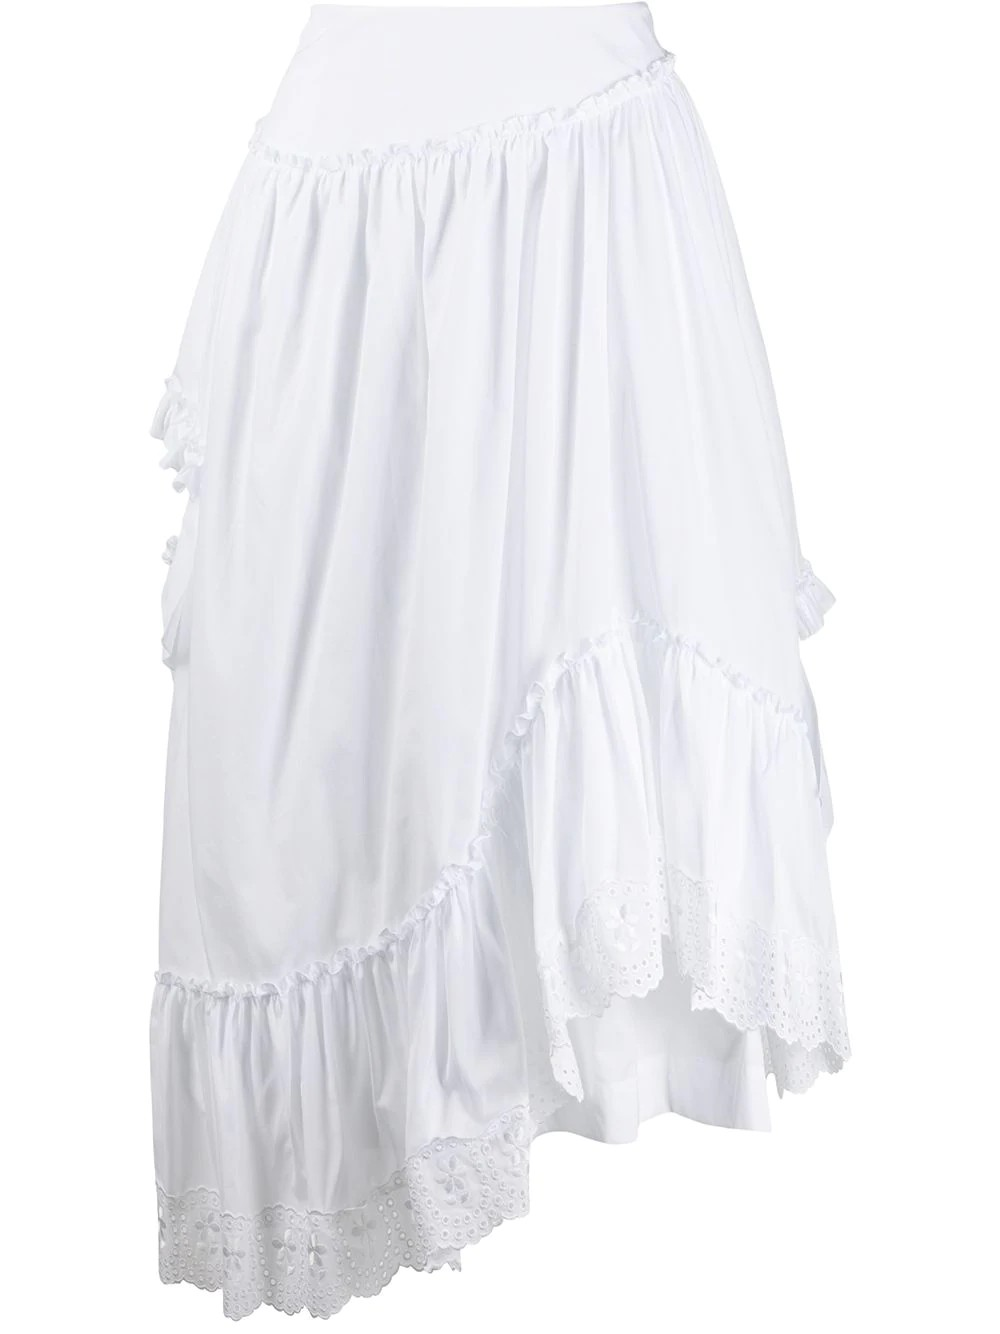 ASYMMETRIC FRILL SINGLE BITE SKIRT